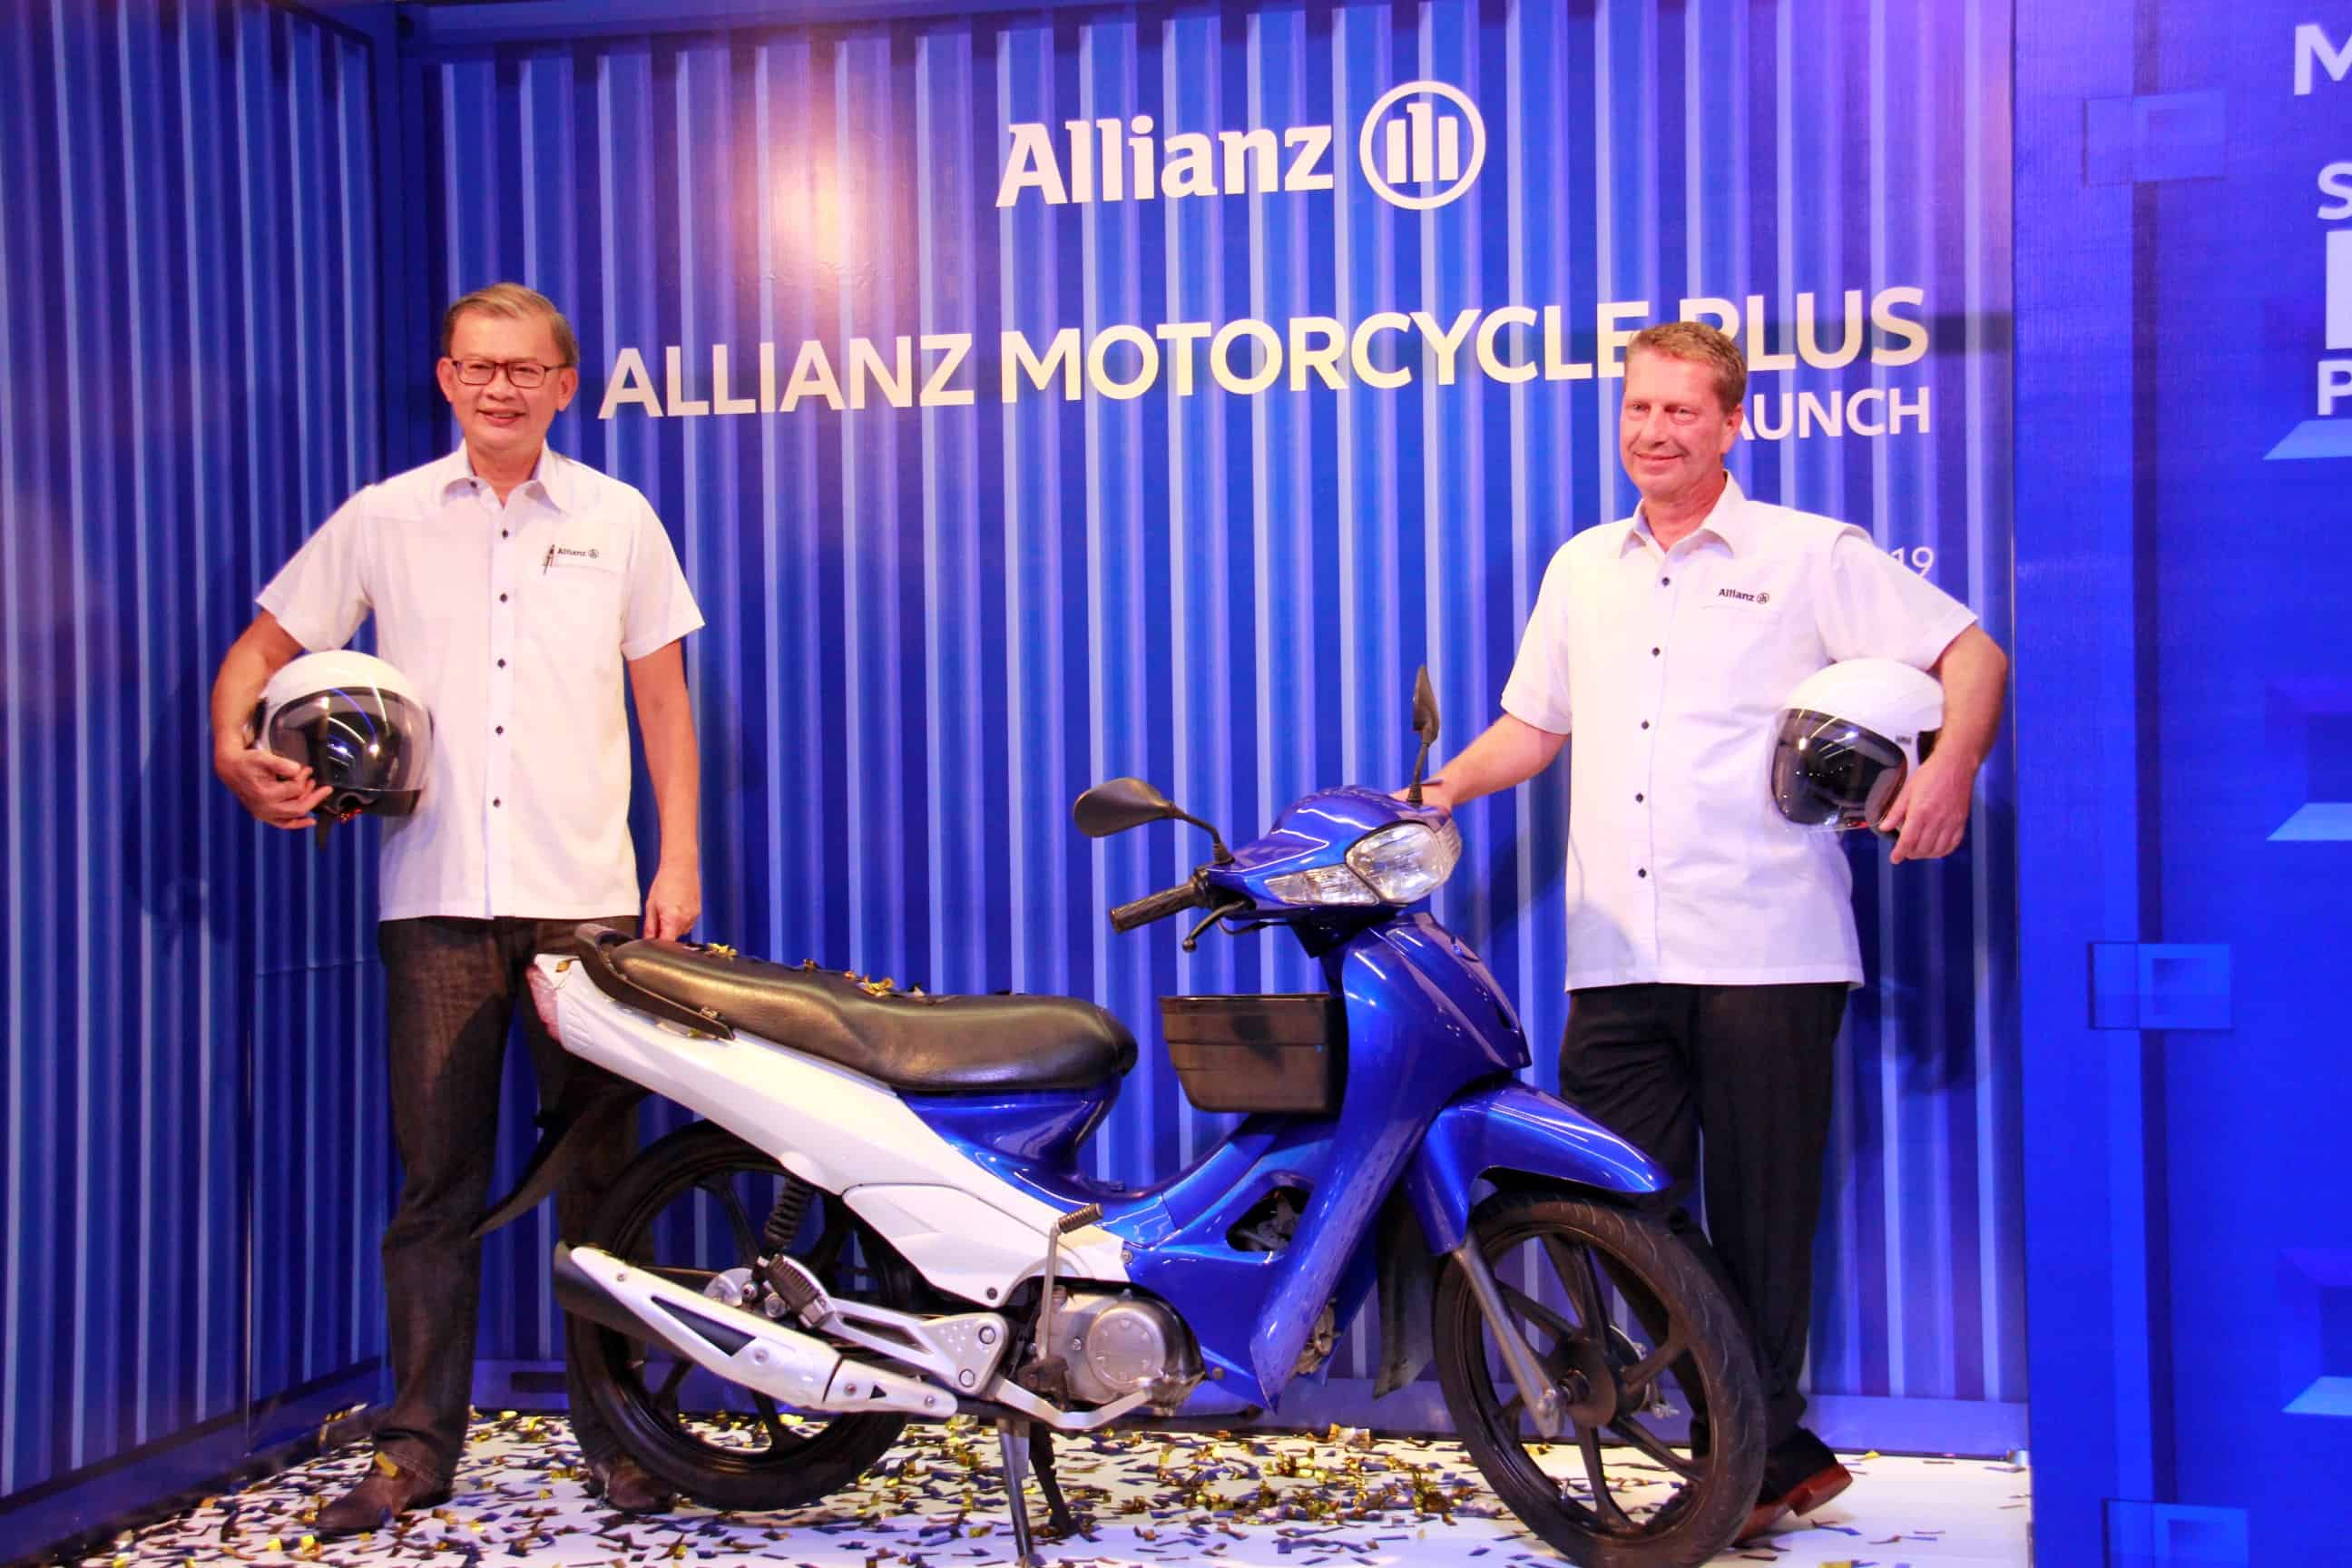 Allianz Malaysia Revs Up Protection with Allianz Motorcycle Plus